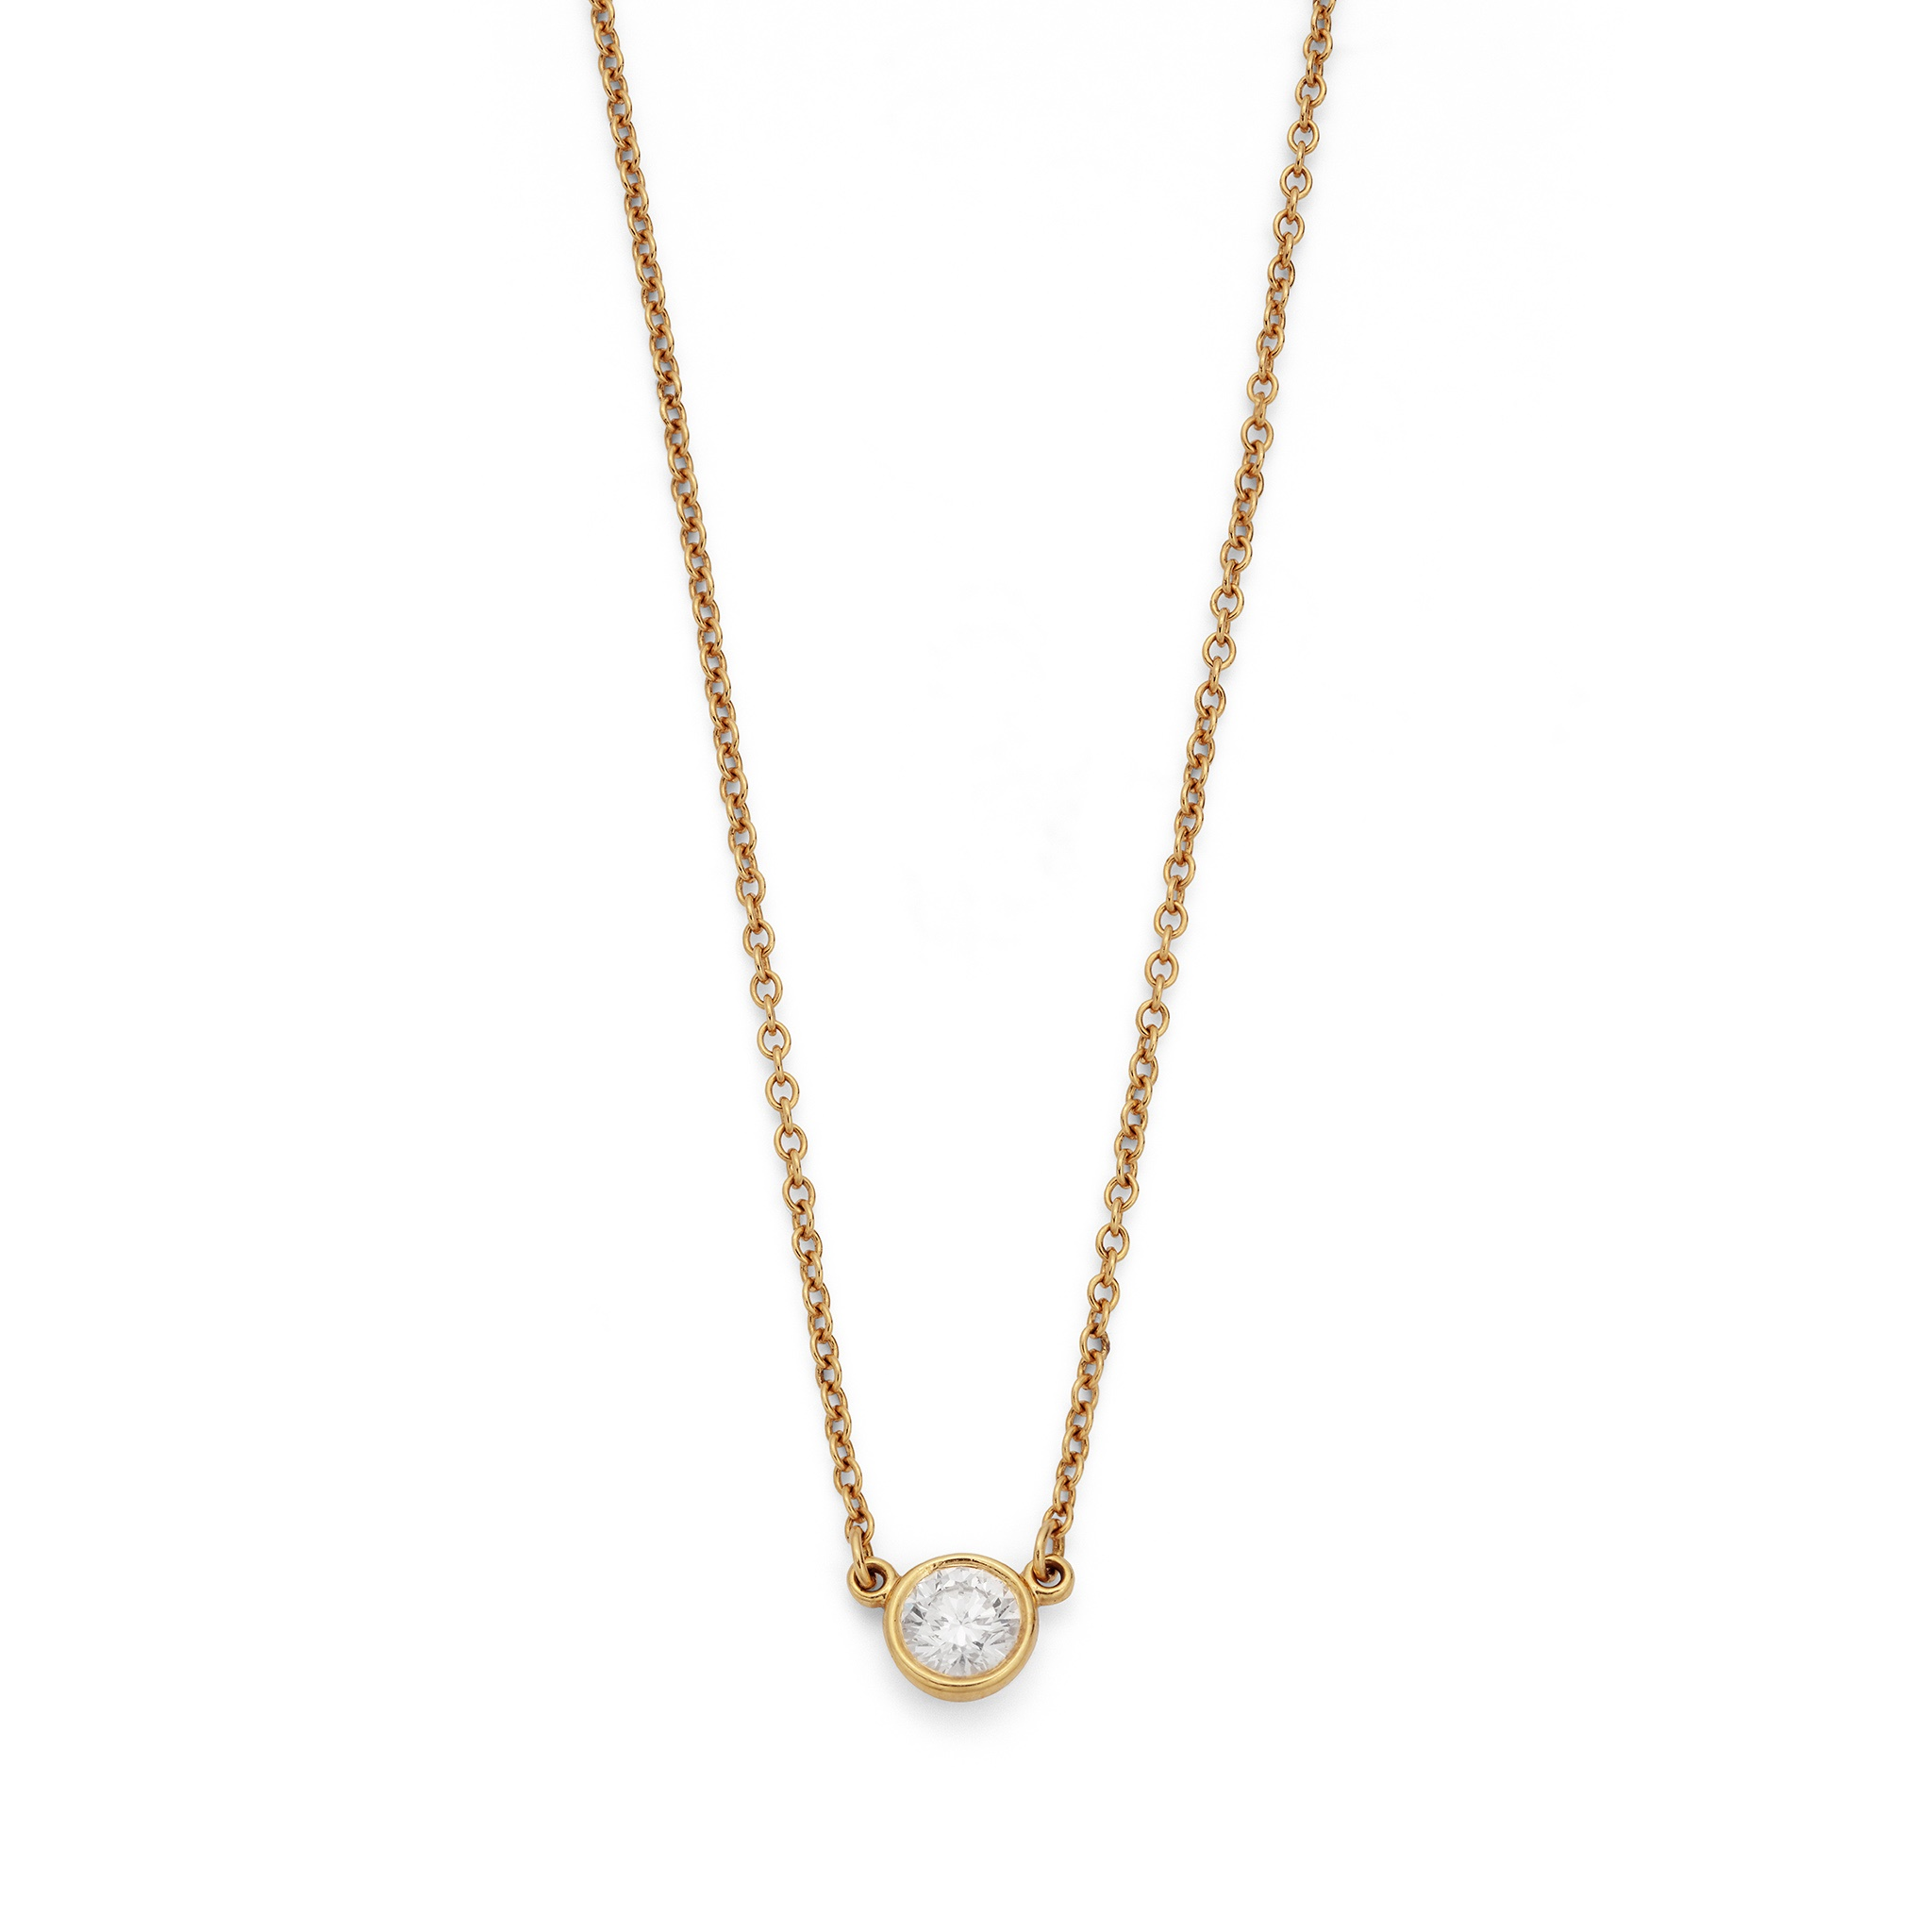 A 'Diamonds by the Yard' pendant necklace, by Elsa Peretti for Tiffany & Co. Collet-set with a - Image 2 of 2